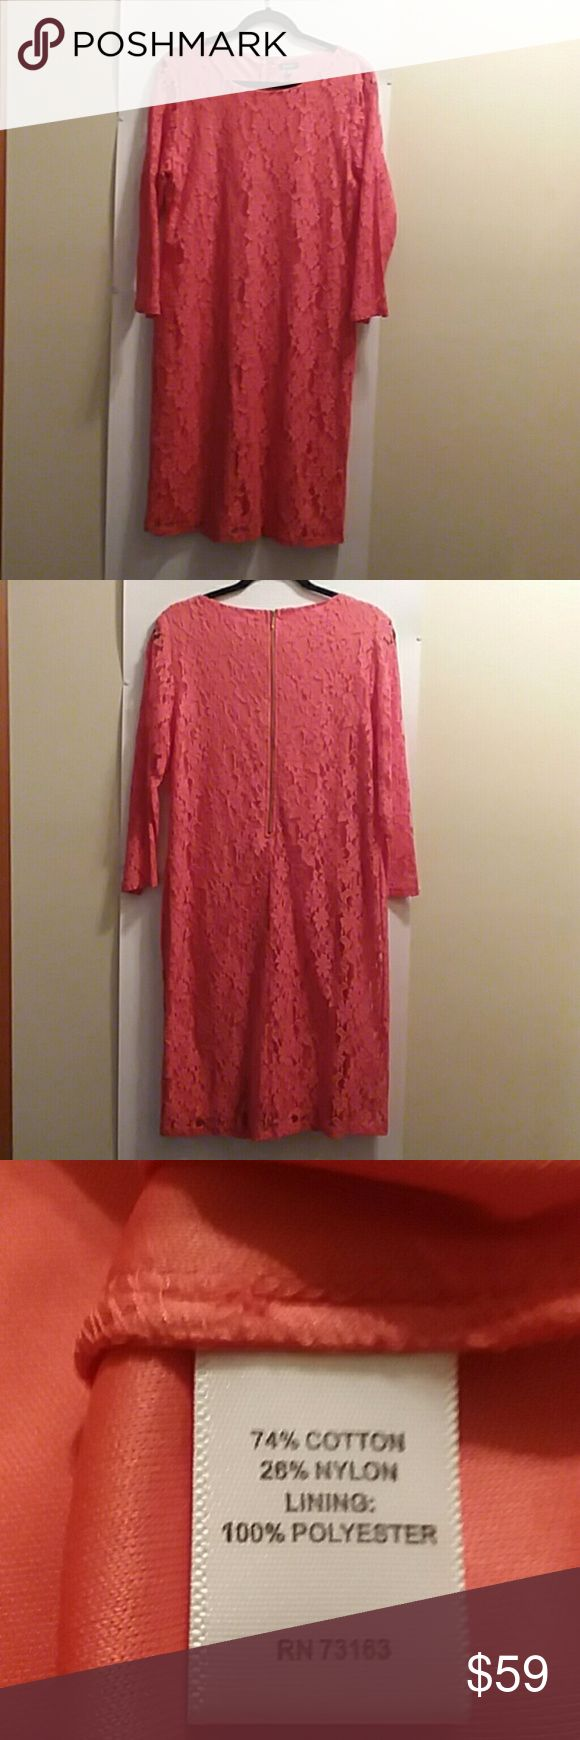 "NEIMAN MARCUS DRESS, LACE, SIZE 14 PLEASE FEEL FREE TO ASK QUESTIONS BEFORE PURCHASE   NWOT, NEVER WORN   COLOR: CORAL LACE SHEATH STYLE ROUND NECK GOLD ZIPPER IN THE BACK  3/4"" SLEEVES LINED 18"" PIT TO PIT  39"" BUST  34"" WAIST  39"" LONG LAYING FLAT  SEE 3RD PIC FOR FABRIC CONTENT NEIMAN MARCUS Dresses"